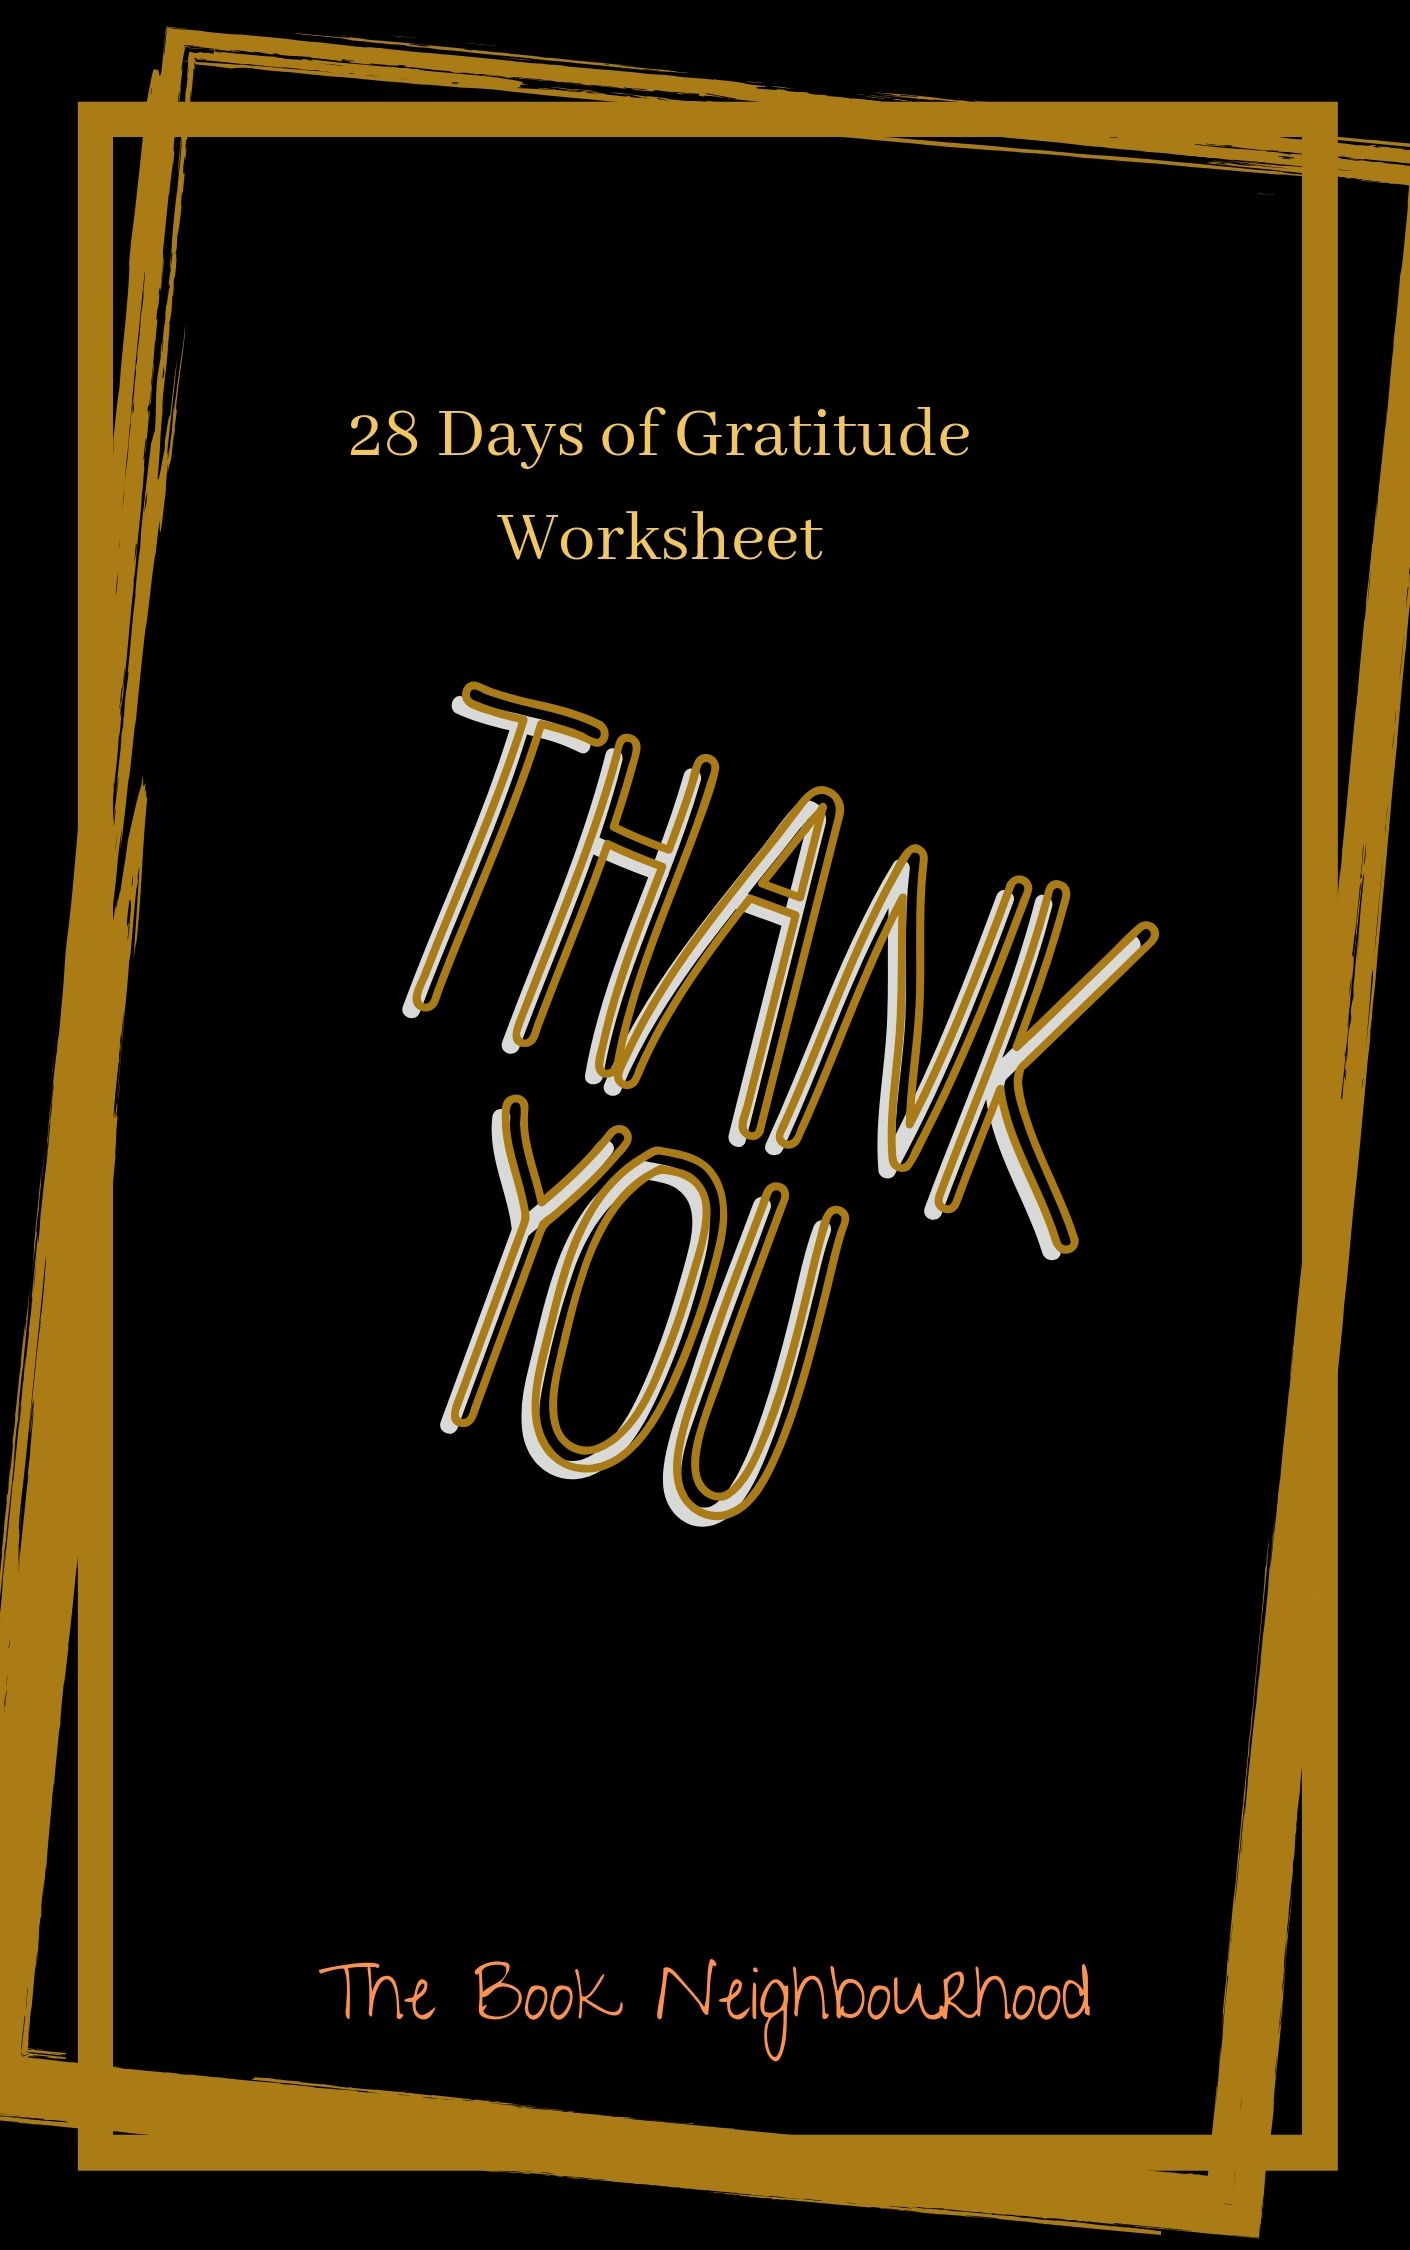 Download This Worksheet For Your 28 Days Of Gratitude